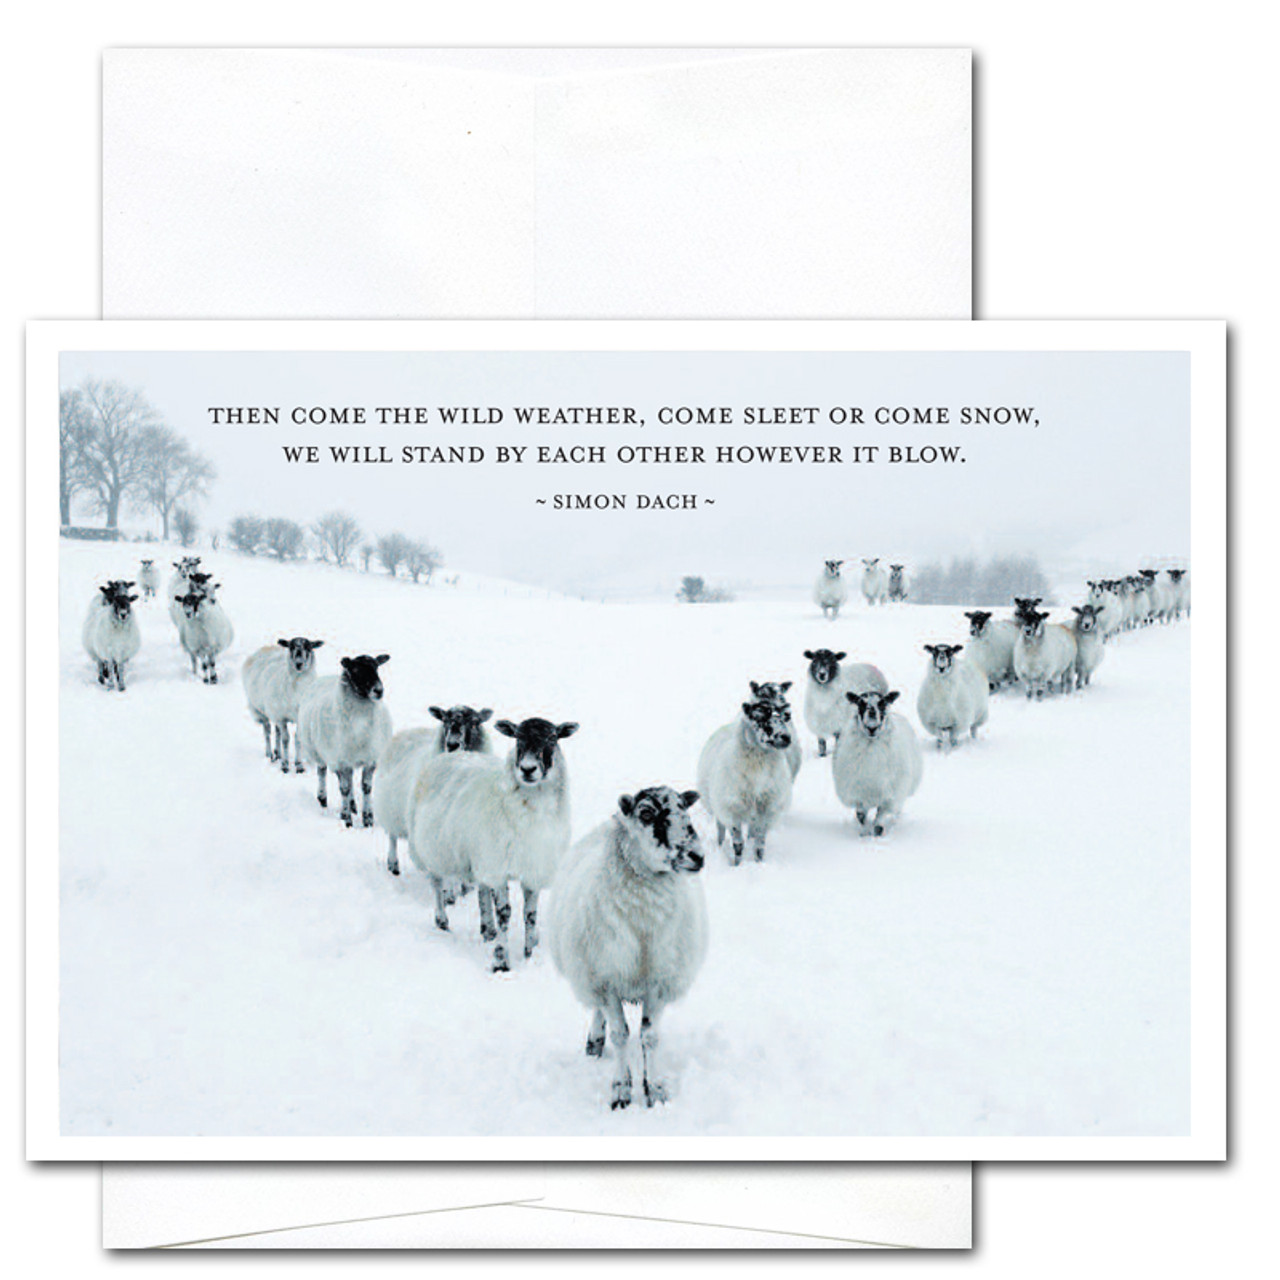 "Quotation Card - Sleet or Snow: Cover photo shows a group of sheep standing in a ""V"" in a snow covered field with the Simon Dach quotation ""The come the wild weather, come sleet or come snow, we will stand by each other however it blow"""